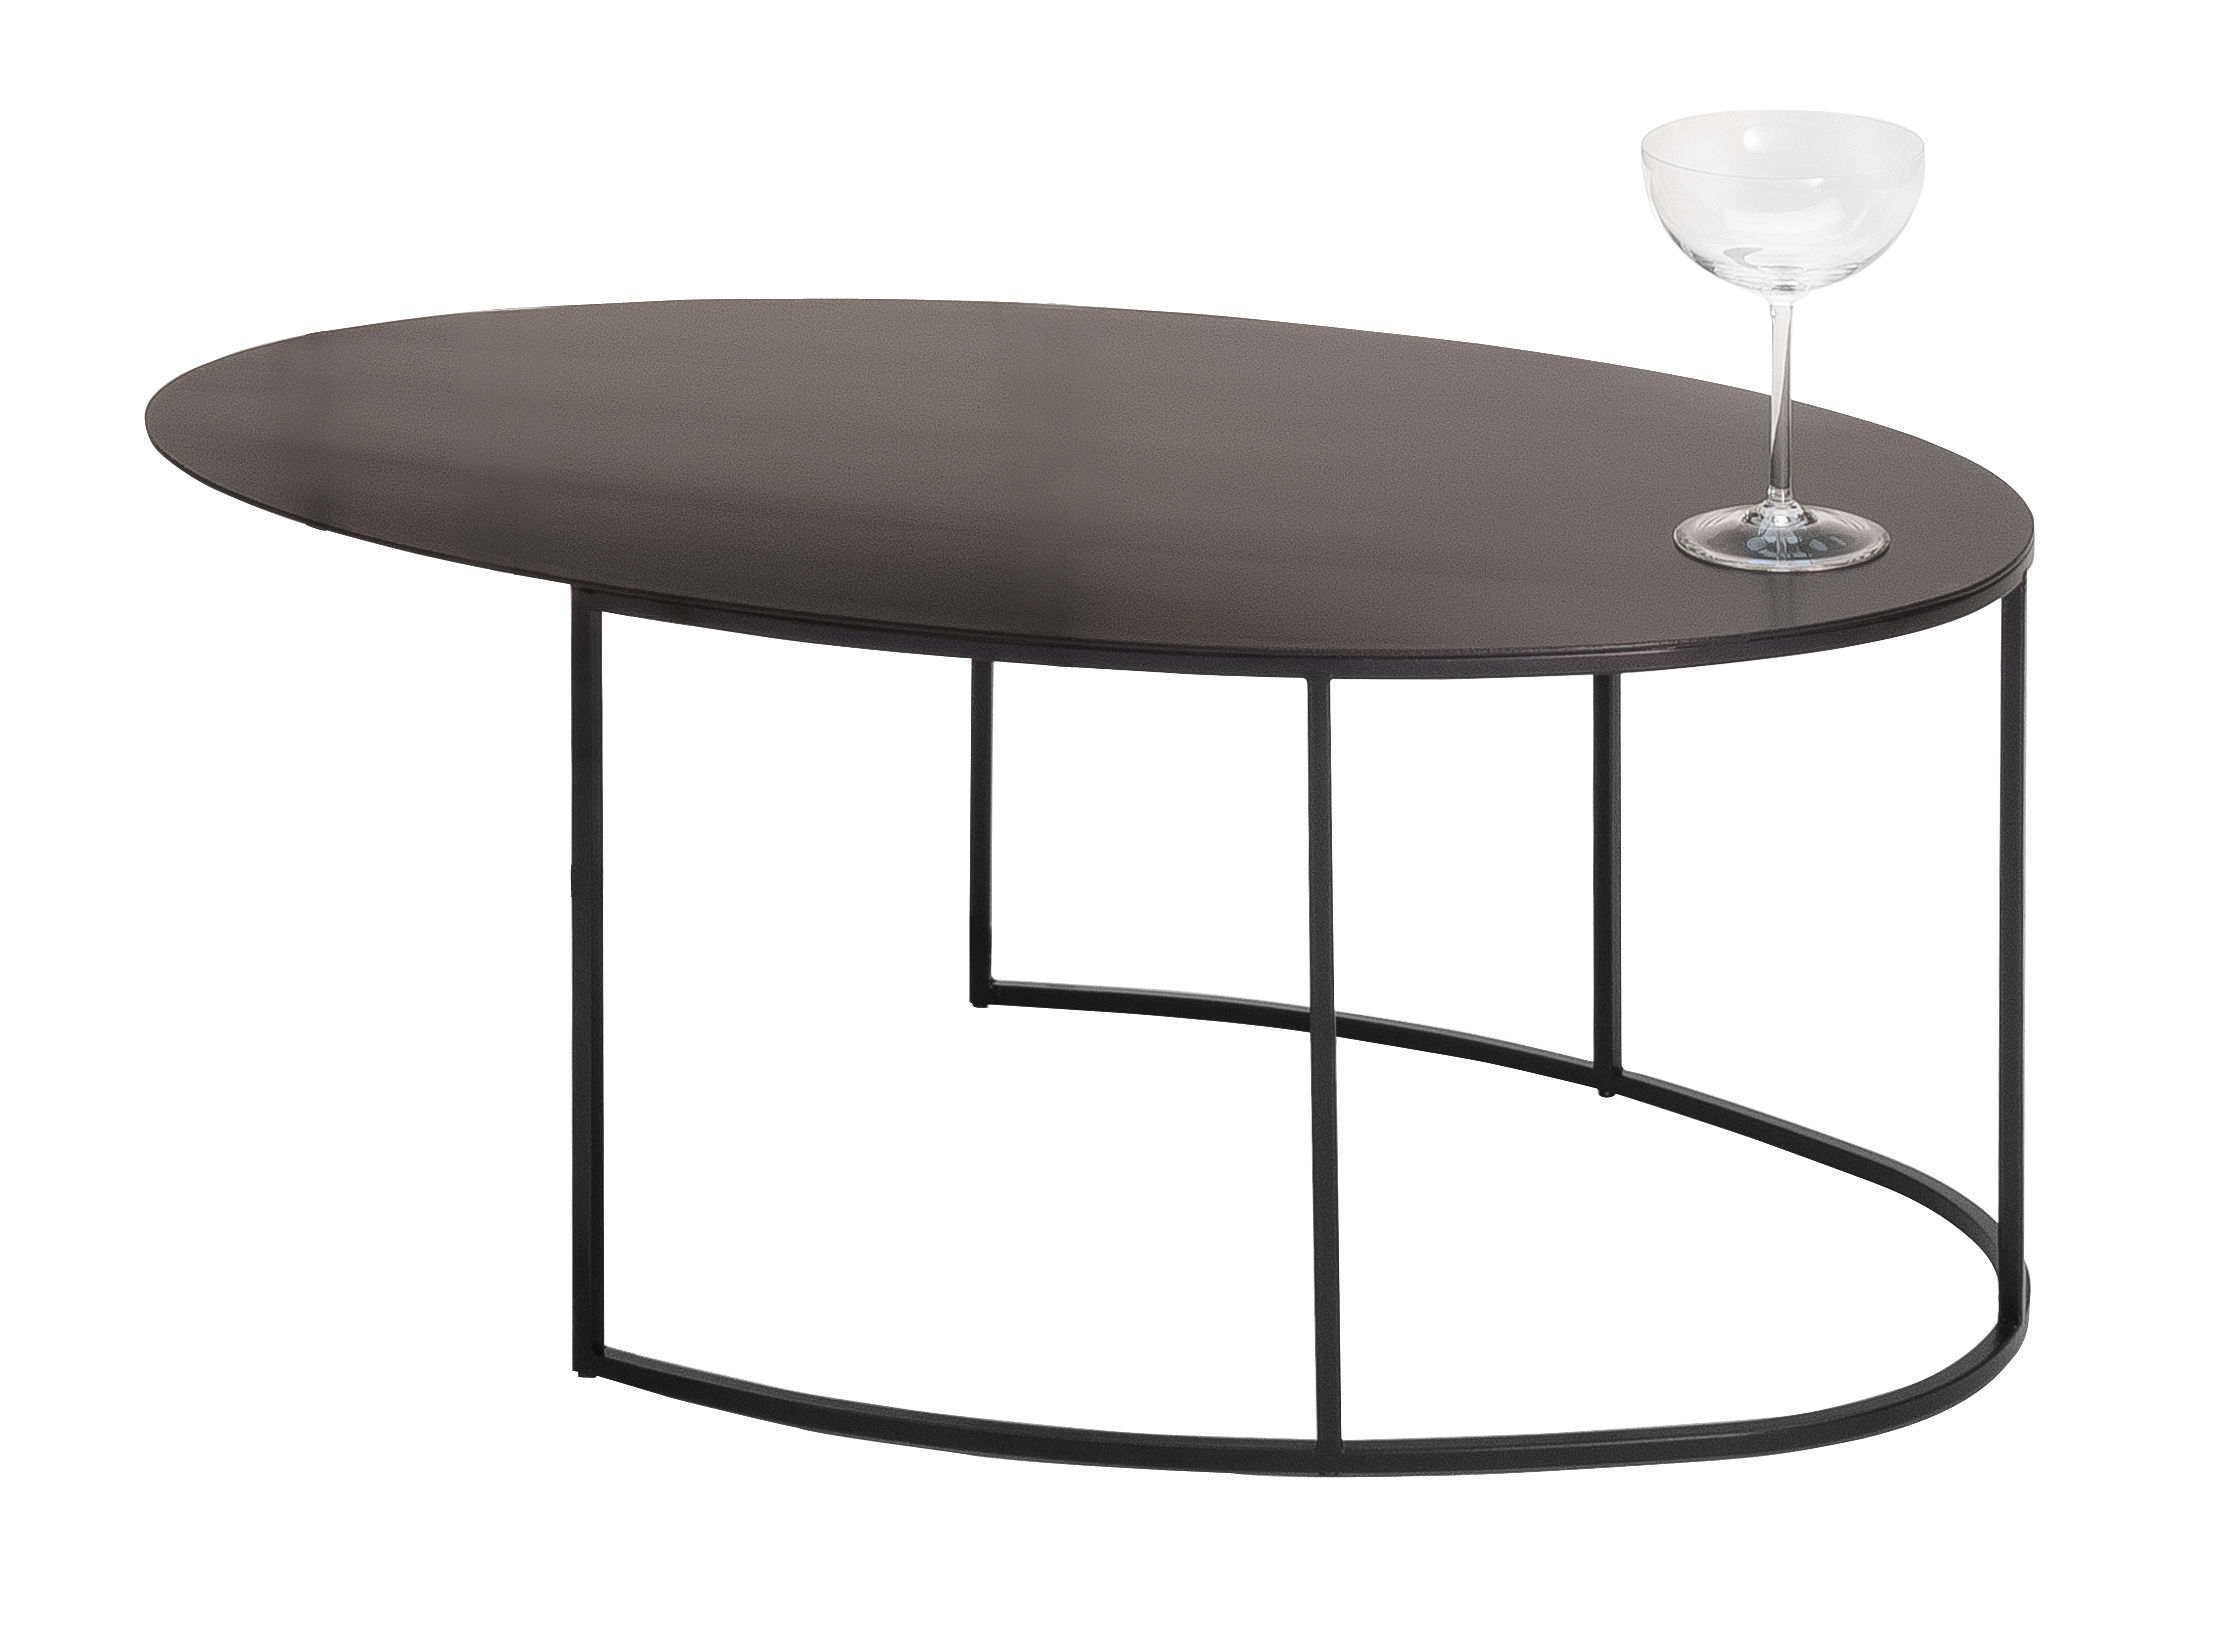 slim irony coffee table oval h 29 cm 72 x 42 black. Black Bedroom Furniture Sets. Home Design Ideas